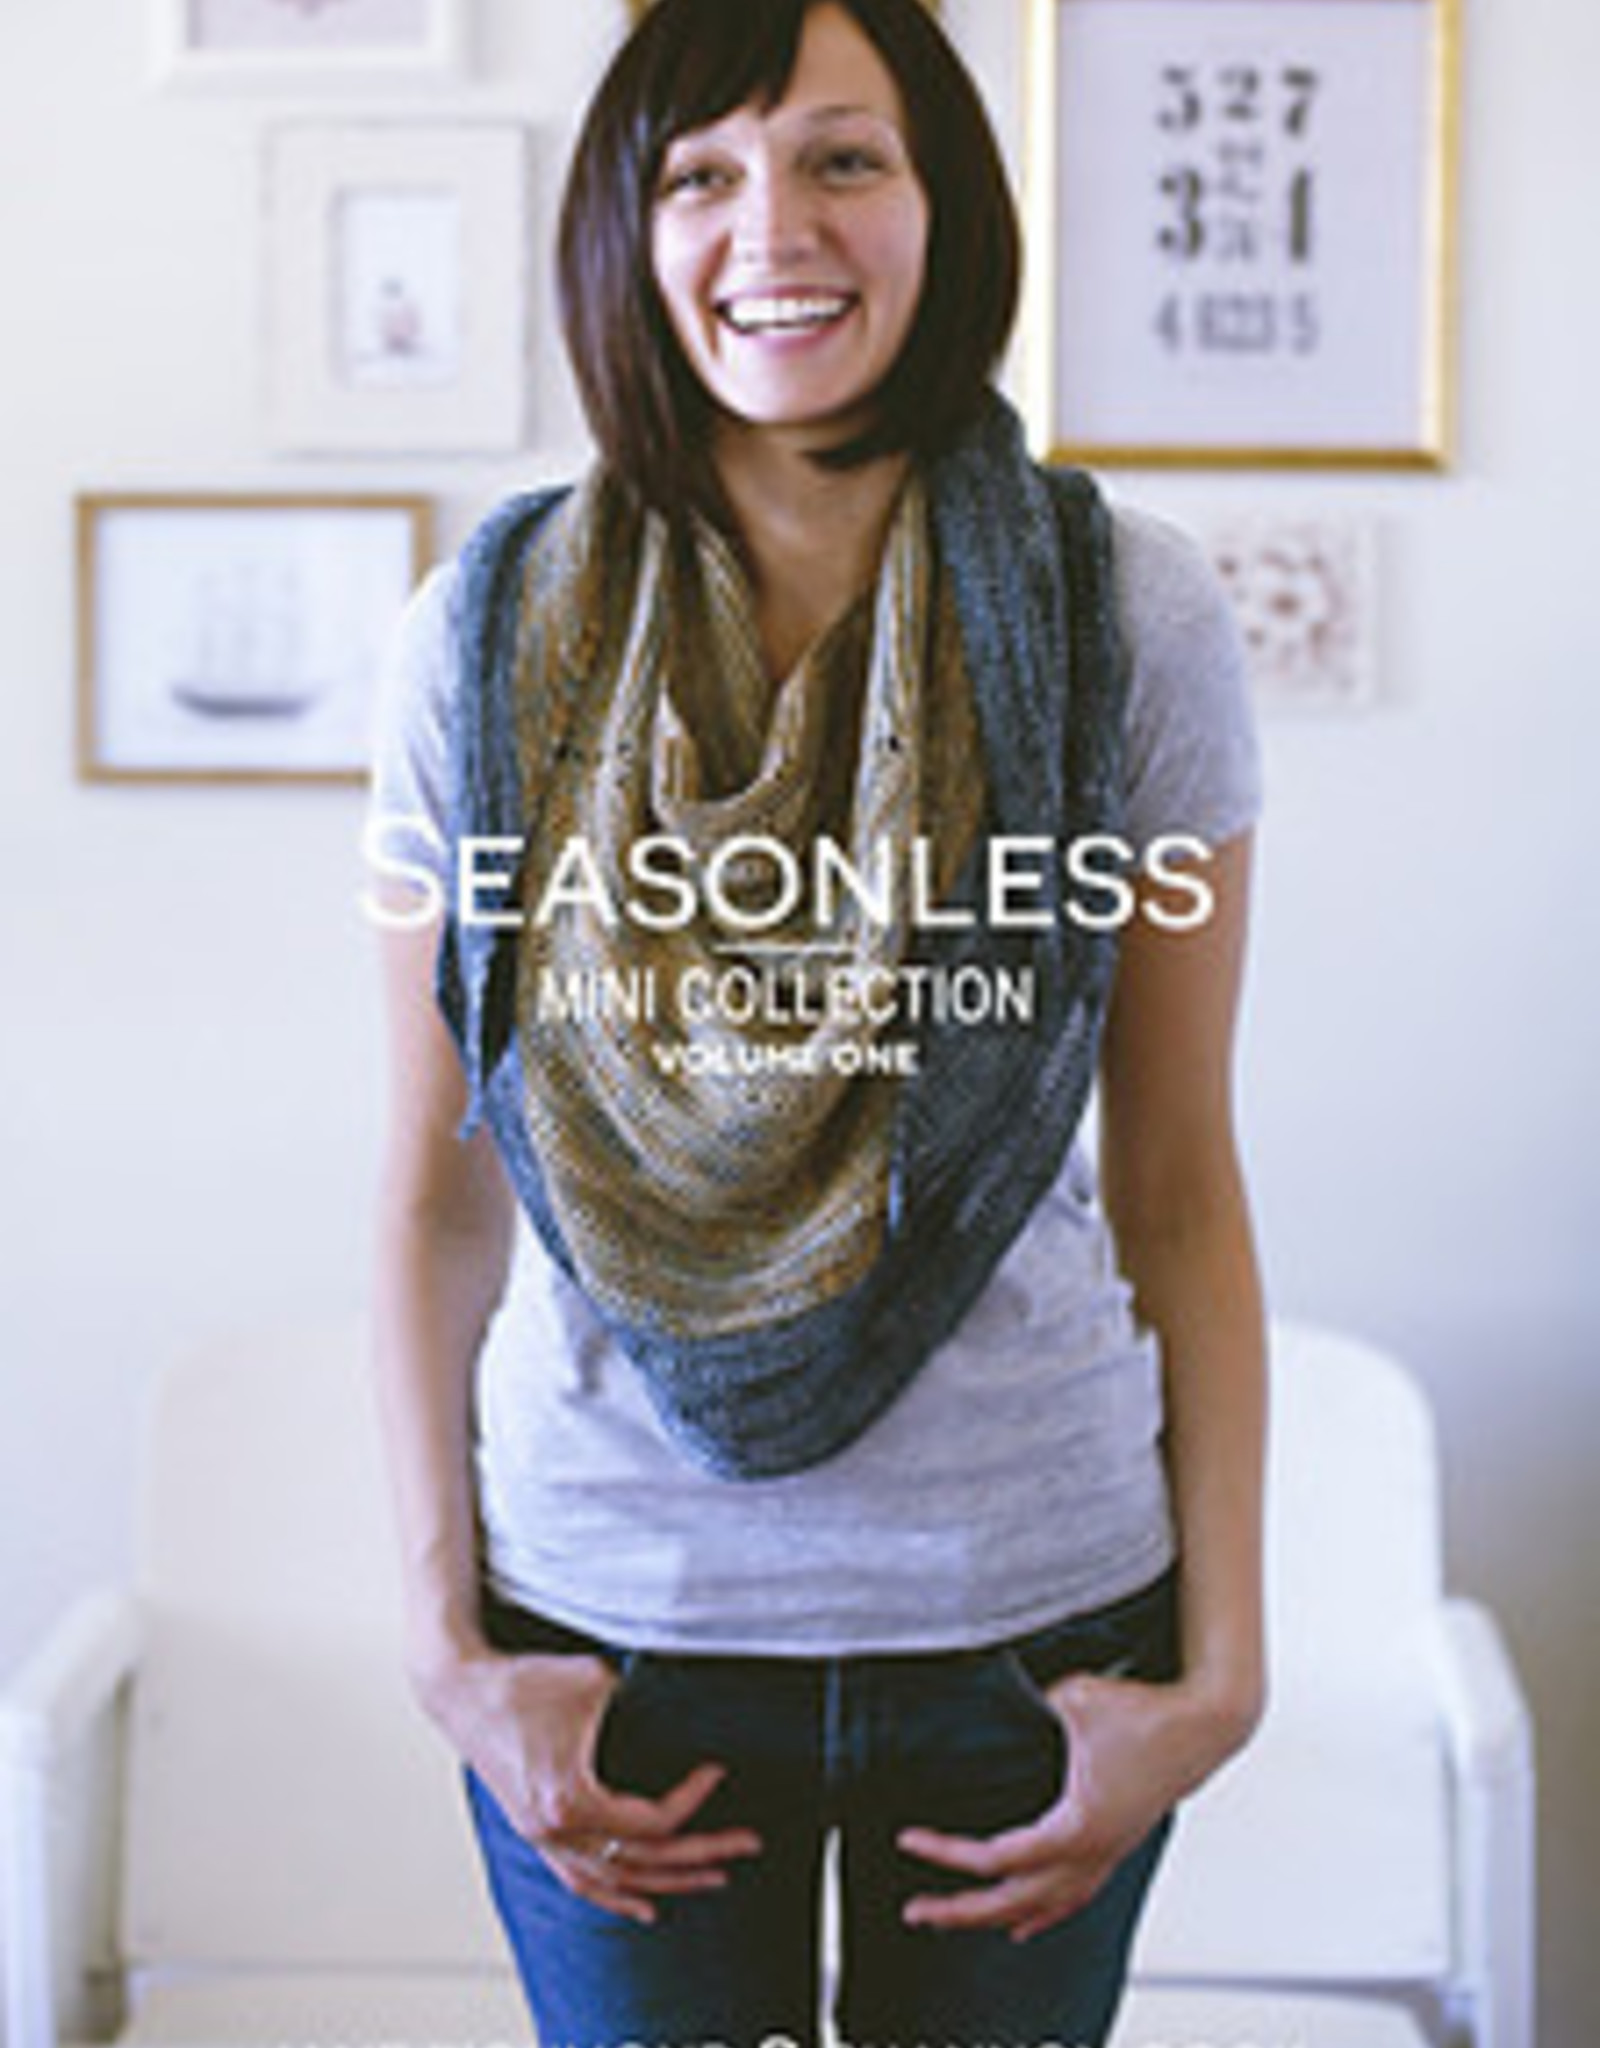 Book - Seasonless - Mini Collection Volume One